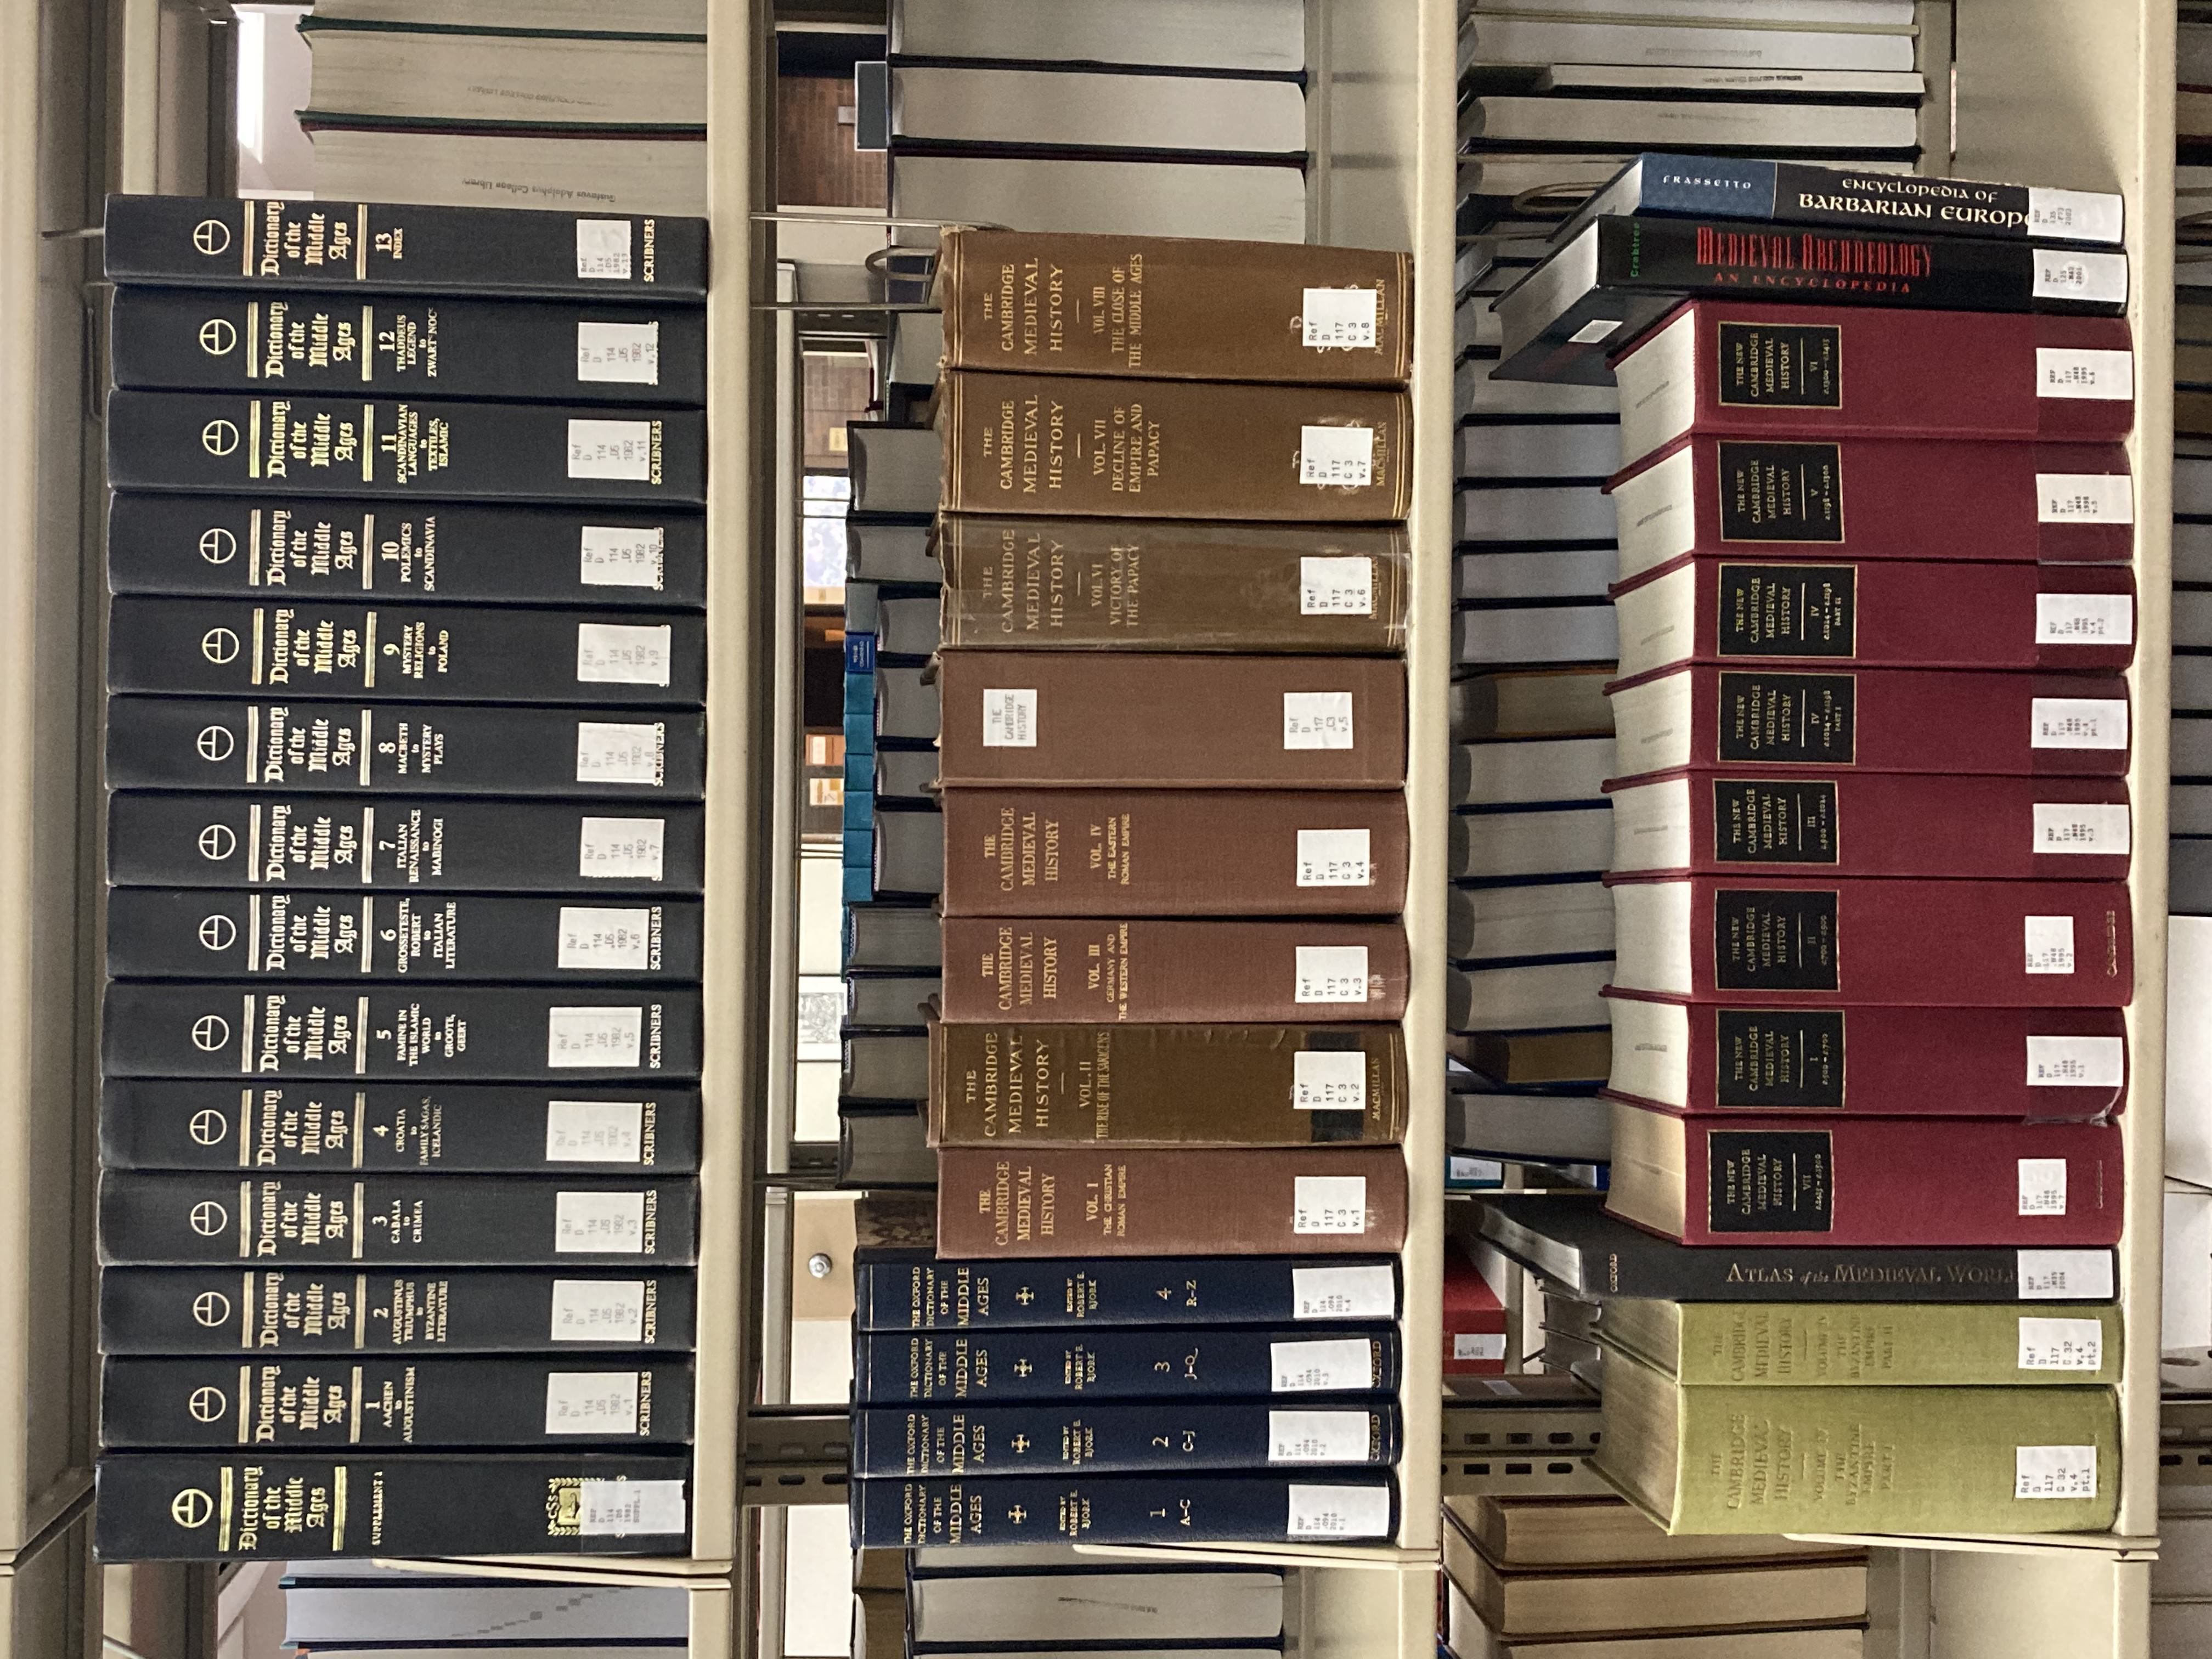 A picture of three shelves of reference books on medieval topics.